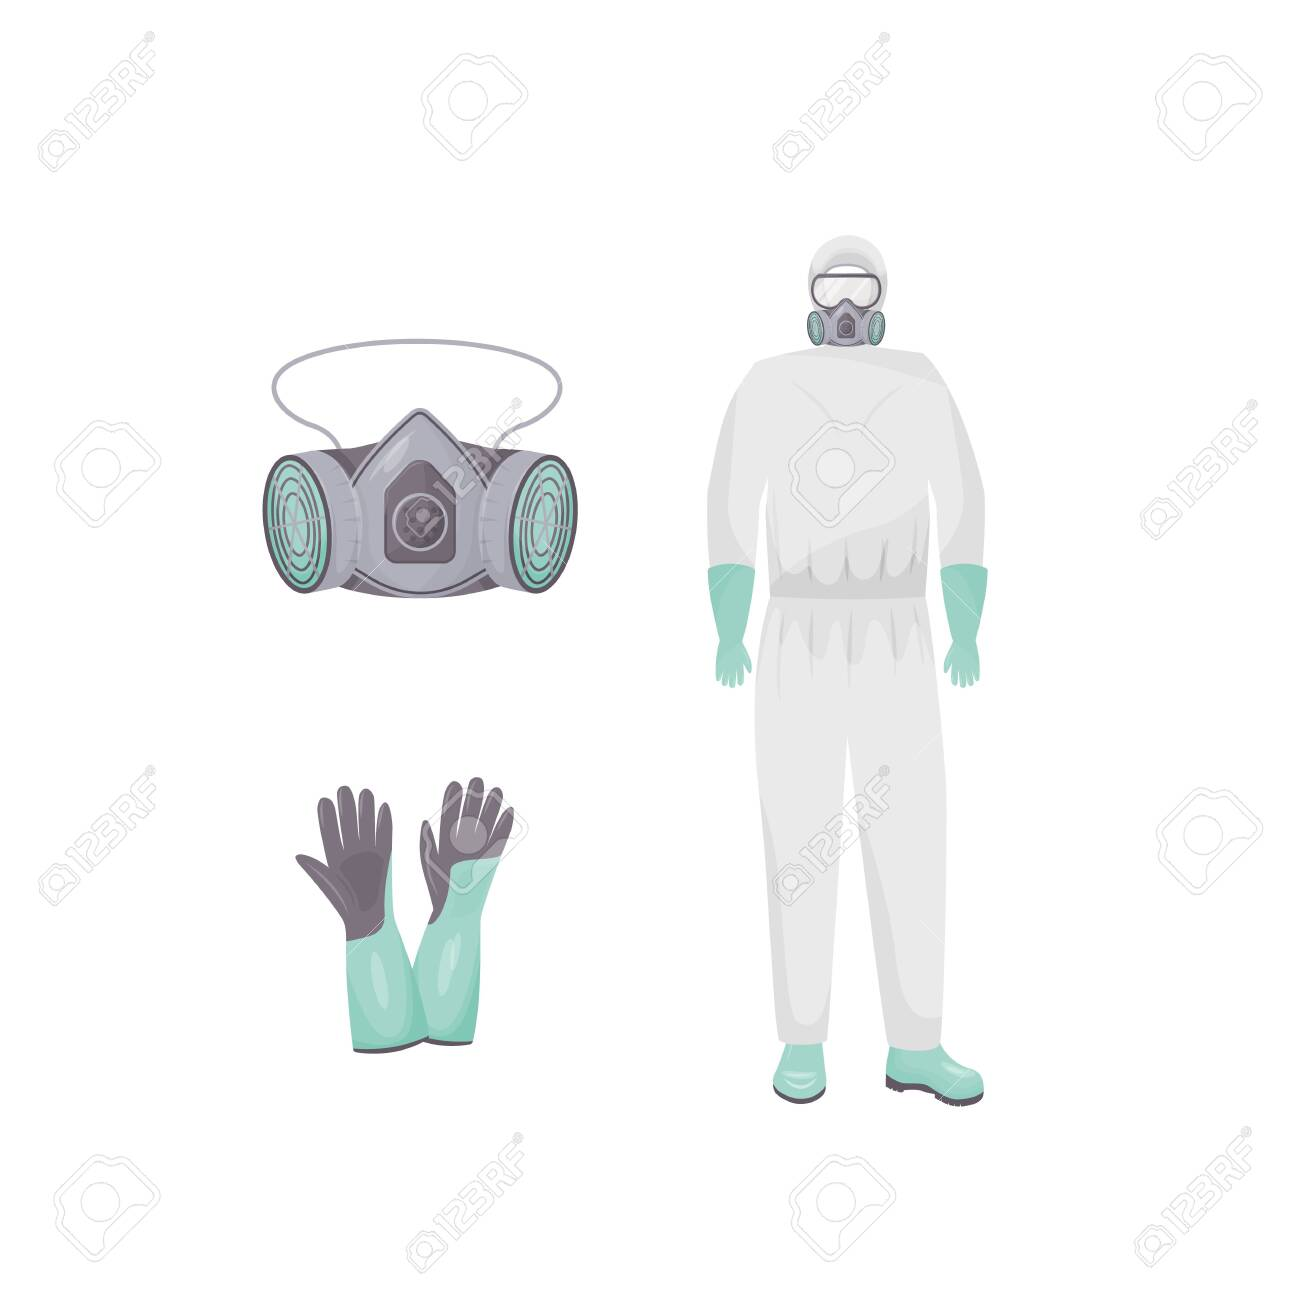 Protective suit and accessories flat color vector objects set. Personal protective equipment. Hazmat clothes, air purifying respirator and gloves 2D isolated cartoon illustrations on white background - 146233354